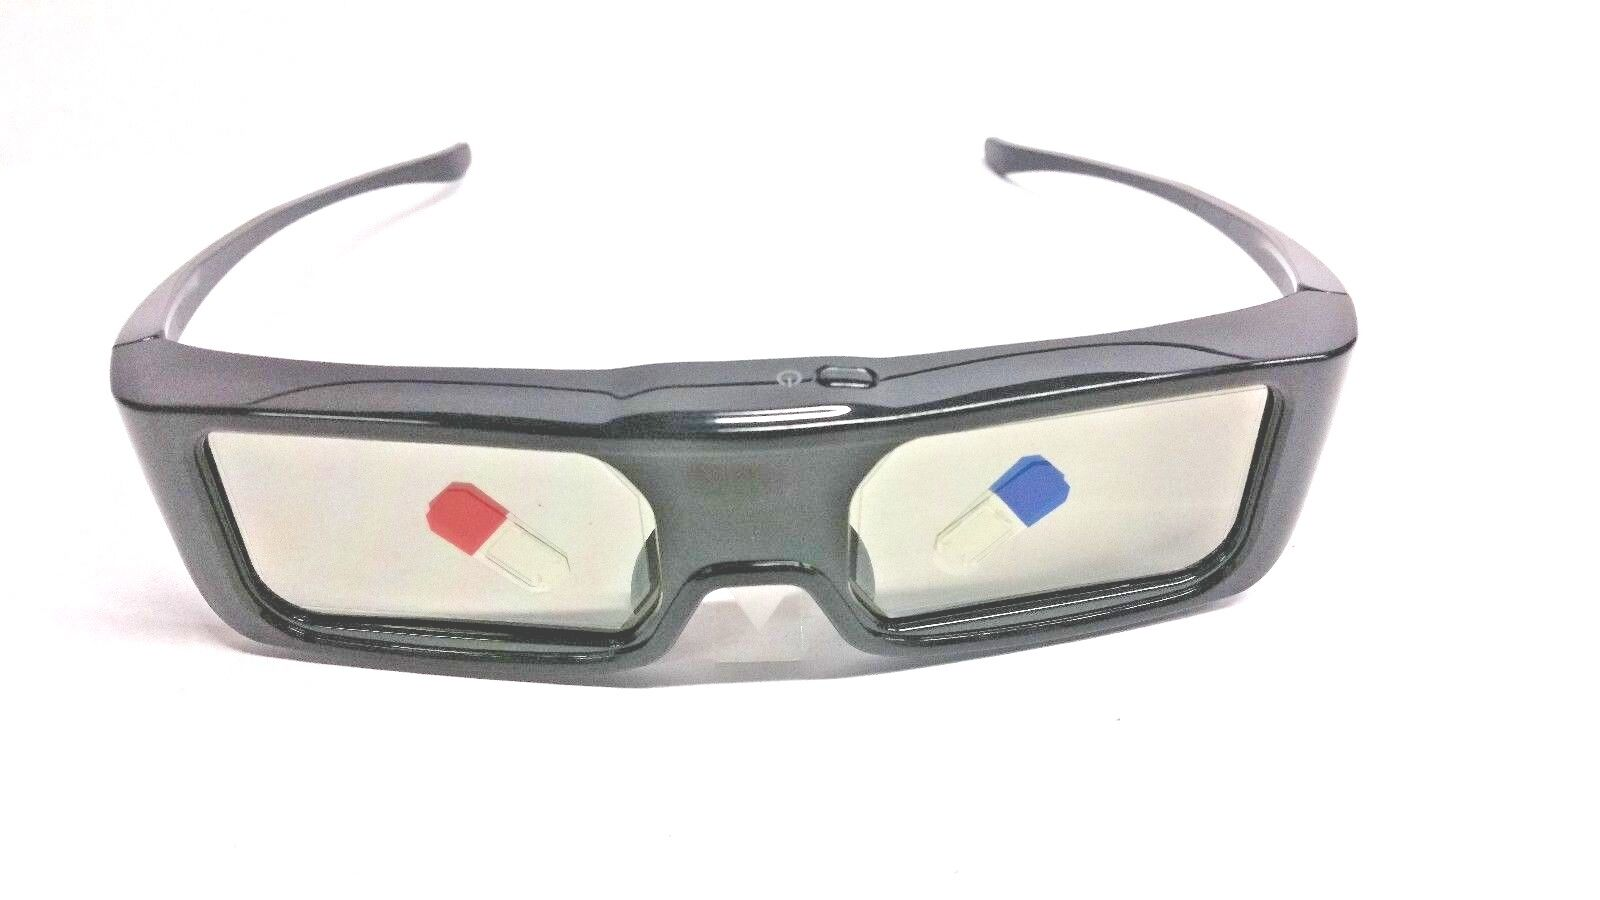 Panasonic Active 3d Glasses Tc-p60st60 Tc-p60vt60 Tc-p65st60